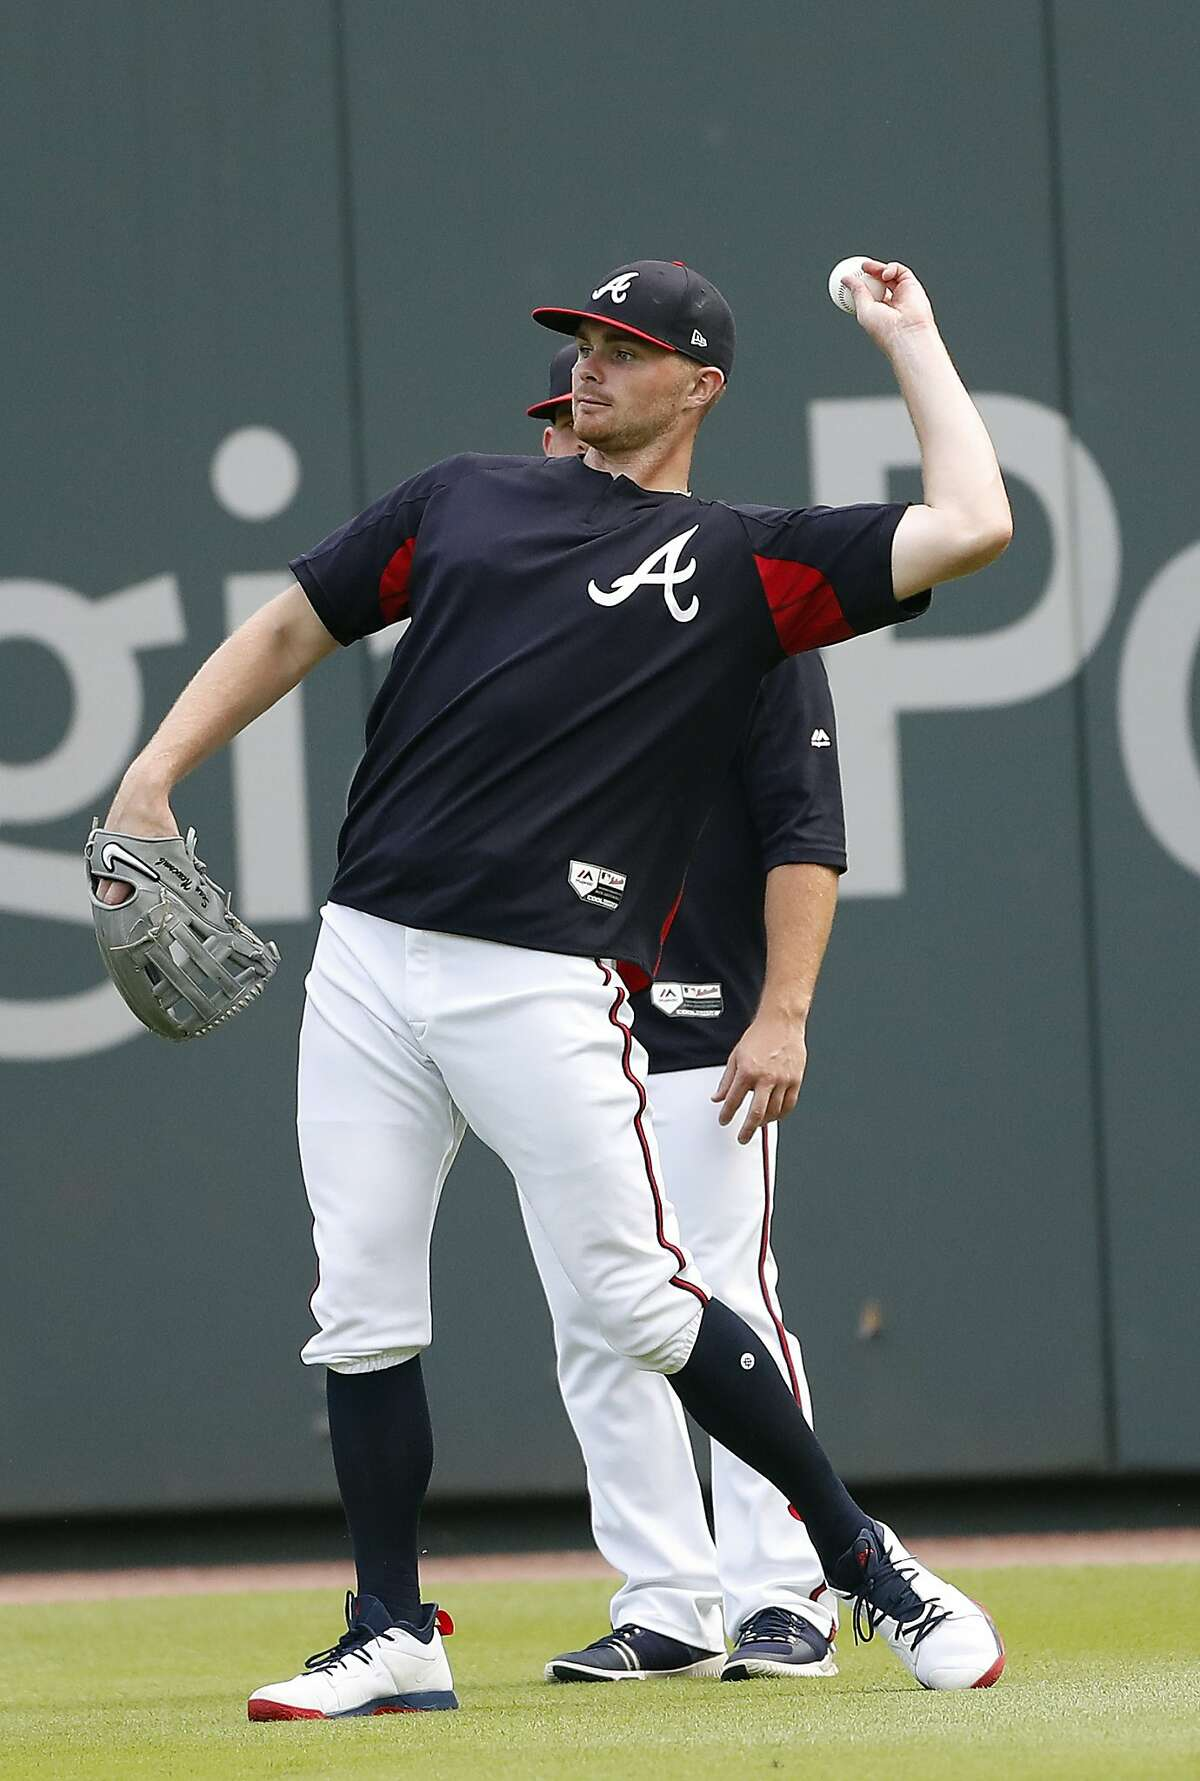 Atlanta Braves starting pitcher Sean Newcomb (15) throws a ball in from the outfield before of a baseball game against the Miami Marlins Monday, July 30, 2018 in Atlanta. Newcomb apologized Sunday for racist, homophobic and sexist tweets he sent as a teenager, calling them